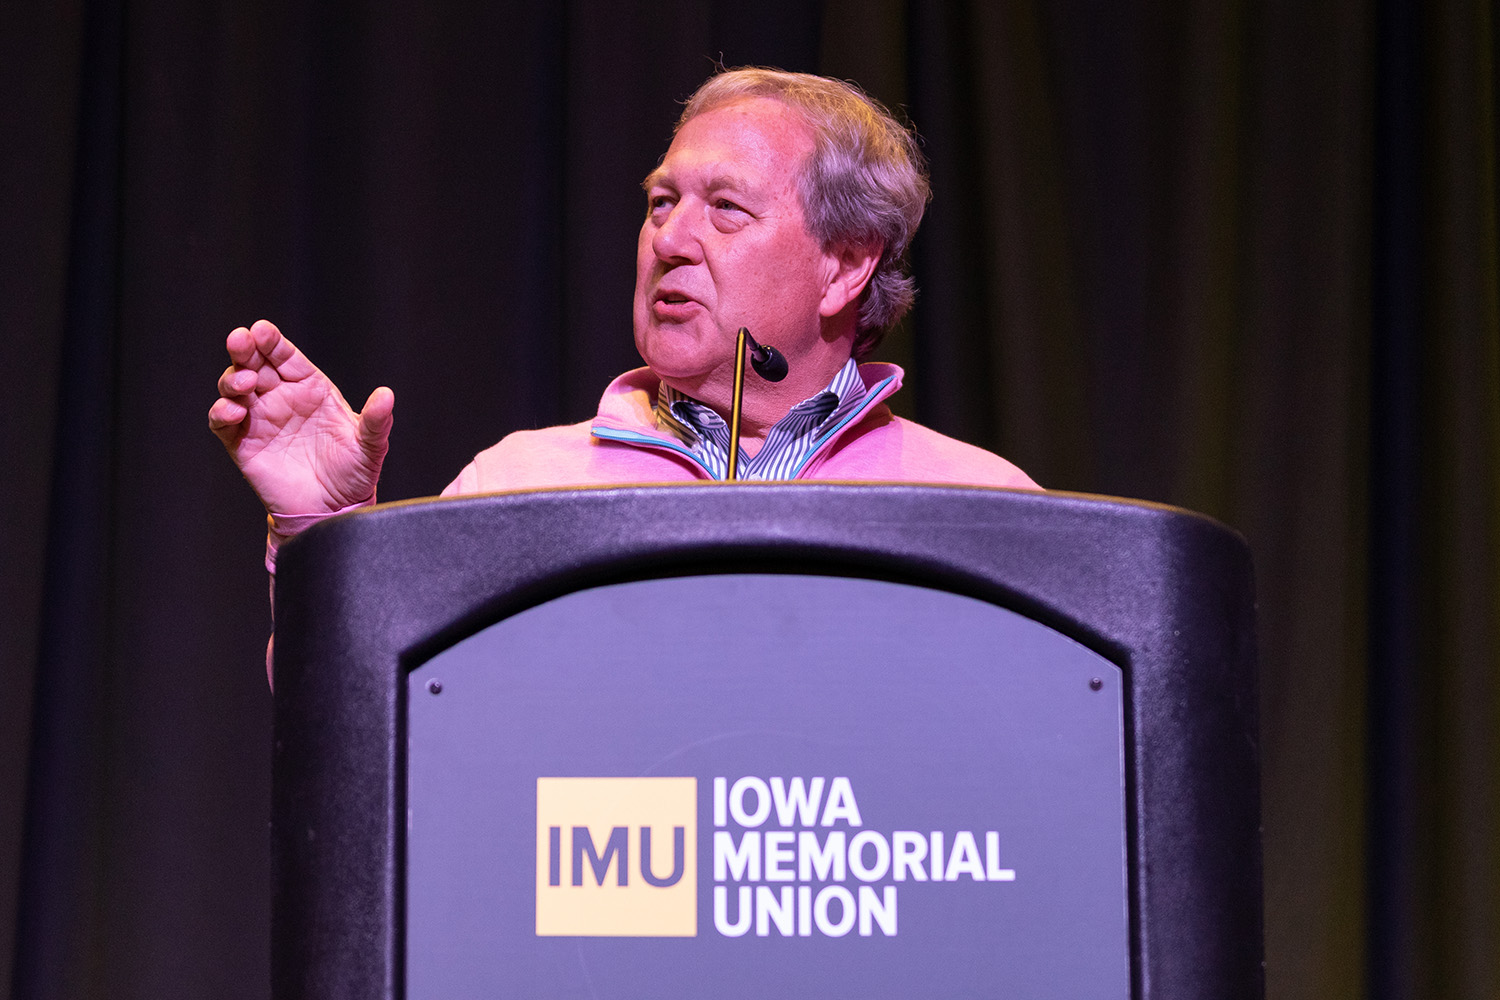 UI President Bruce Harreld speaks at the Chief Diversity Office's 2019 Update on Diversity, Equity, and Inclusion in the IMU on Wednesday, January 16, 2019. (David Harmantas/The Daily Iowan)